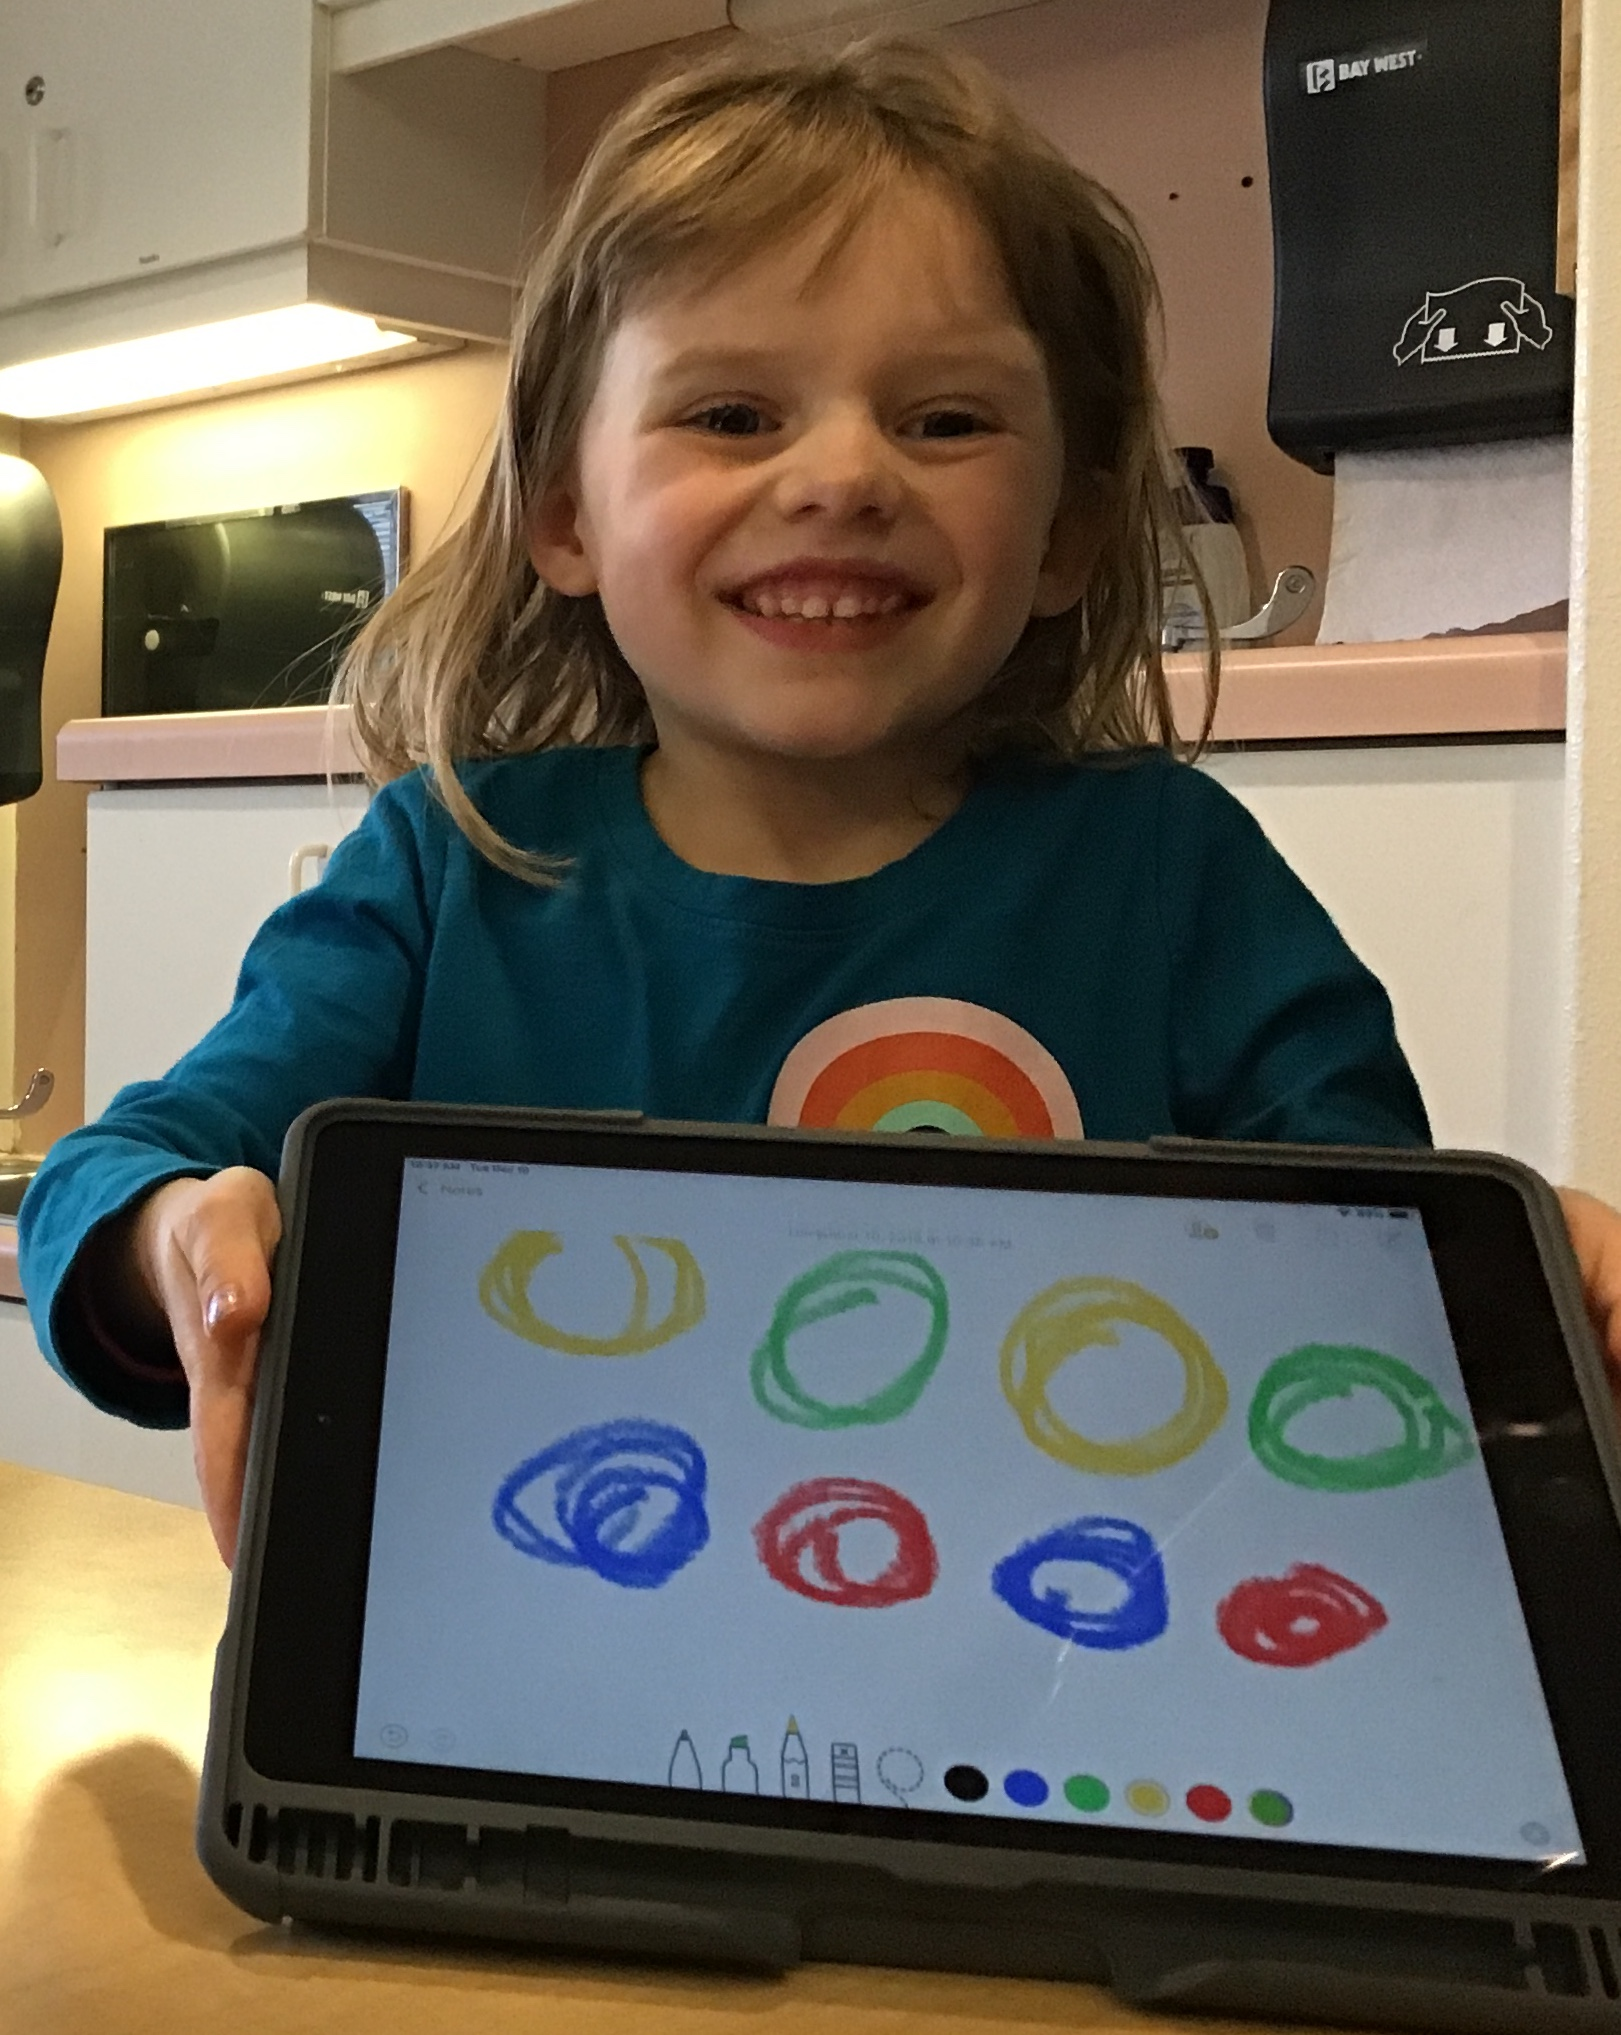 Girl showing pattern created on iPad